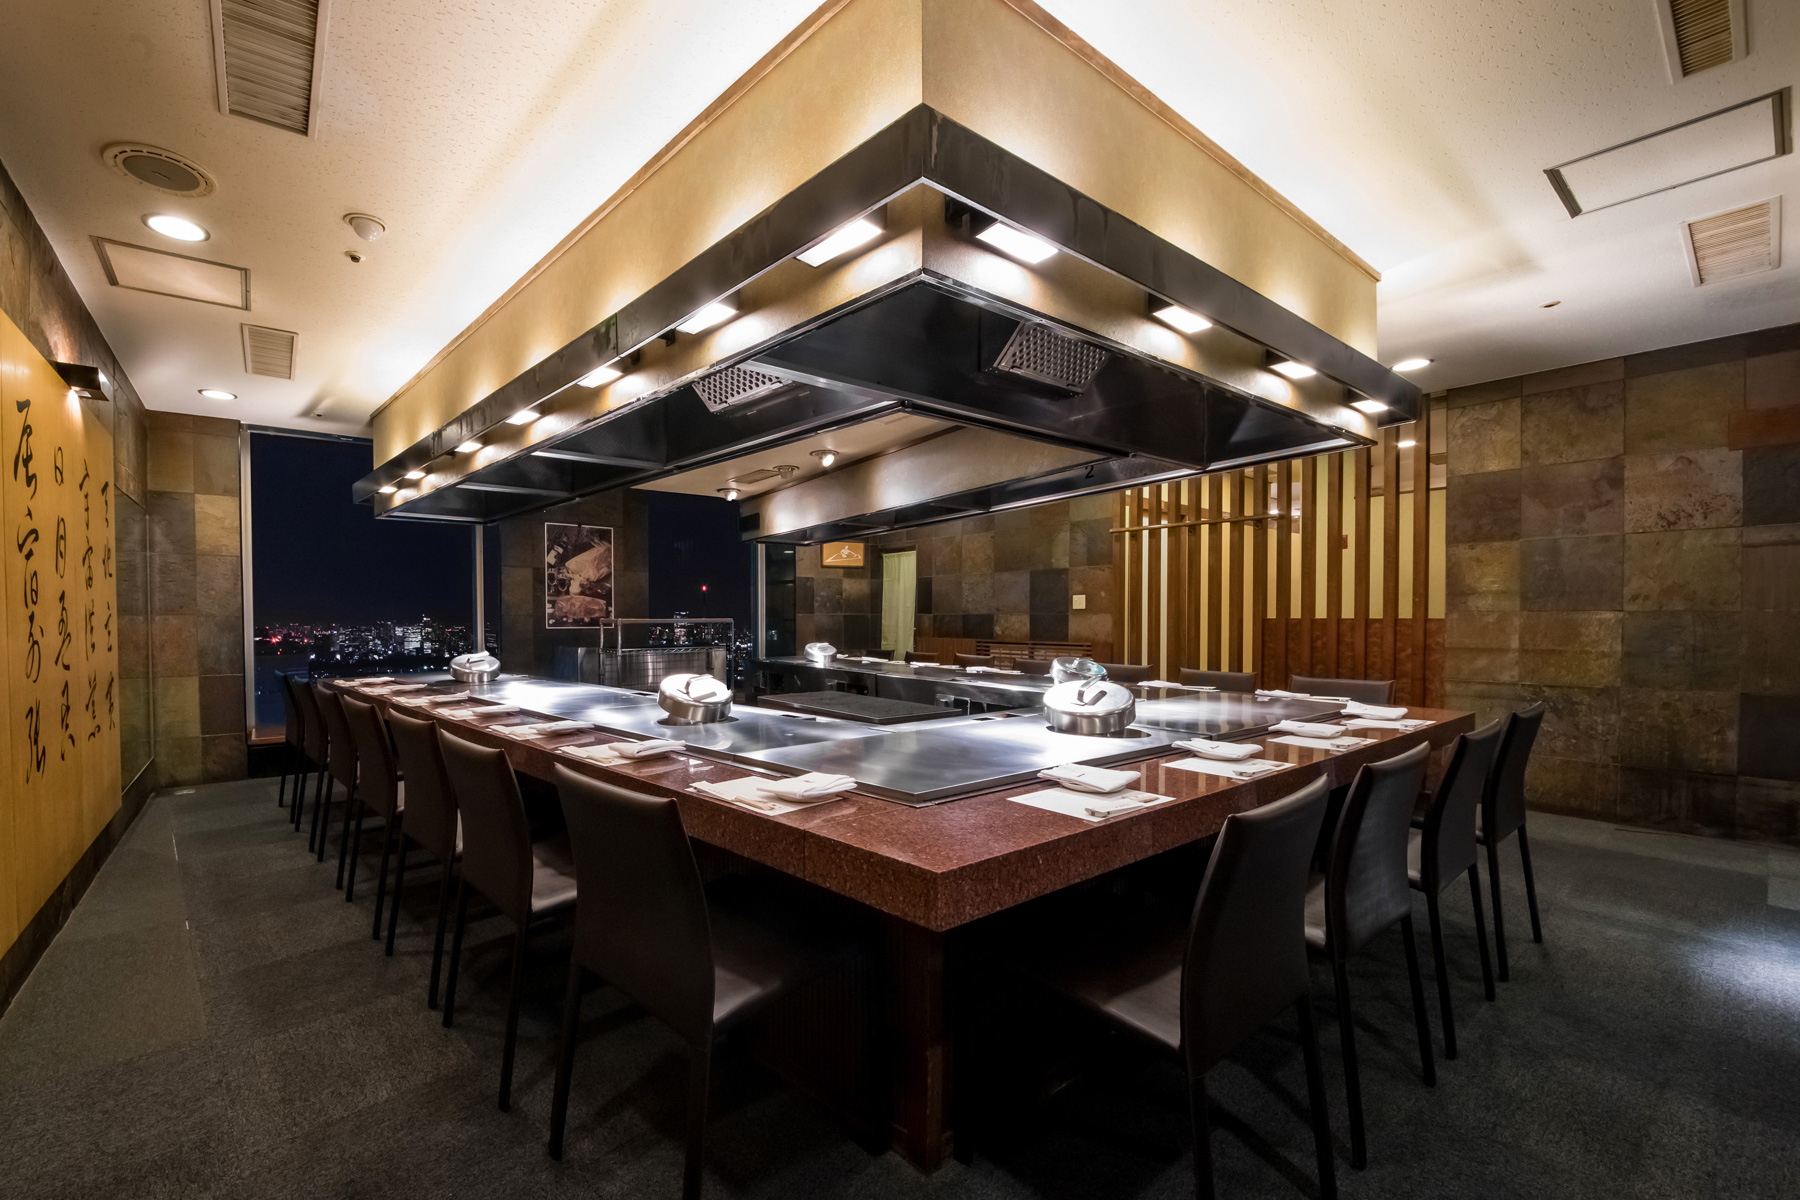 Misono restaurants You can now enjoy the taste of the original Misono's teppanyaki Kobe beef steak in the sky lounge on the 51st floor of the Sumitomo building, in Shinjuku, Tokyo.